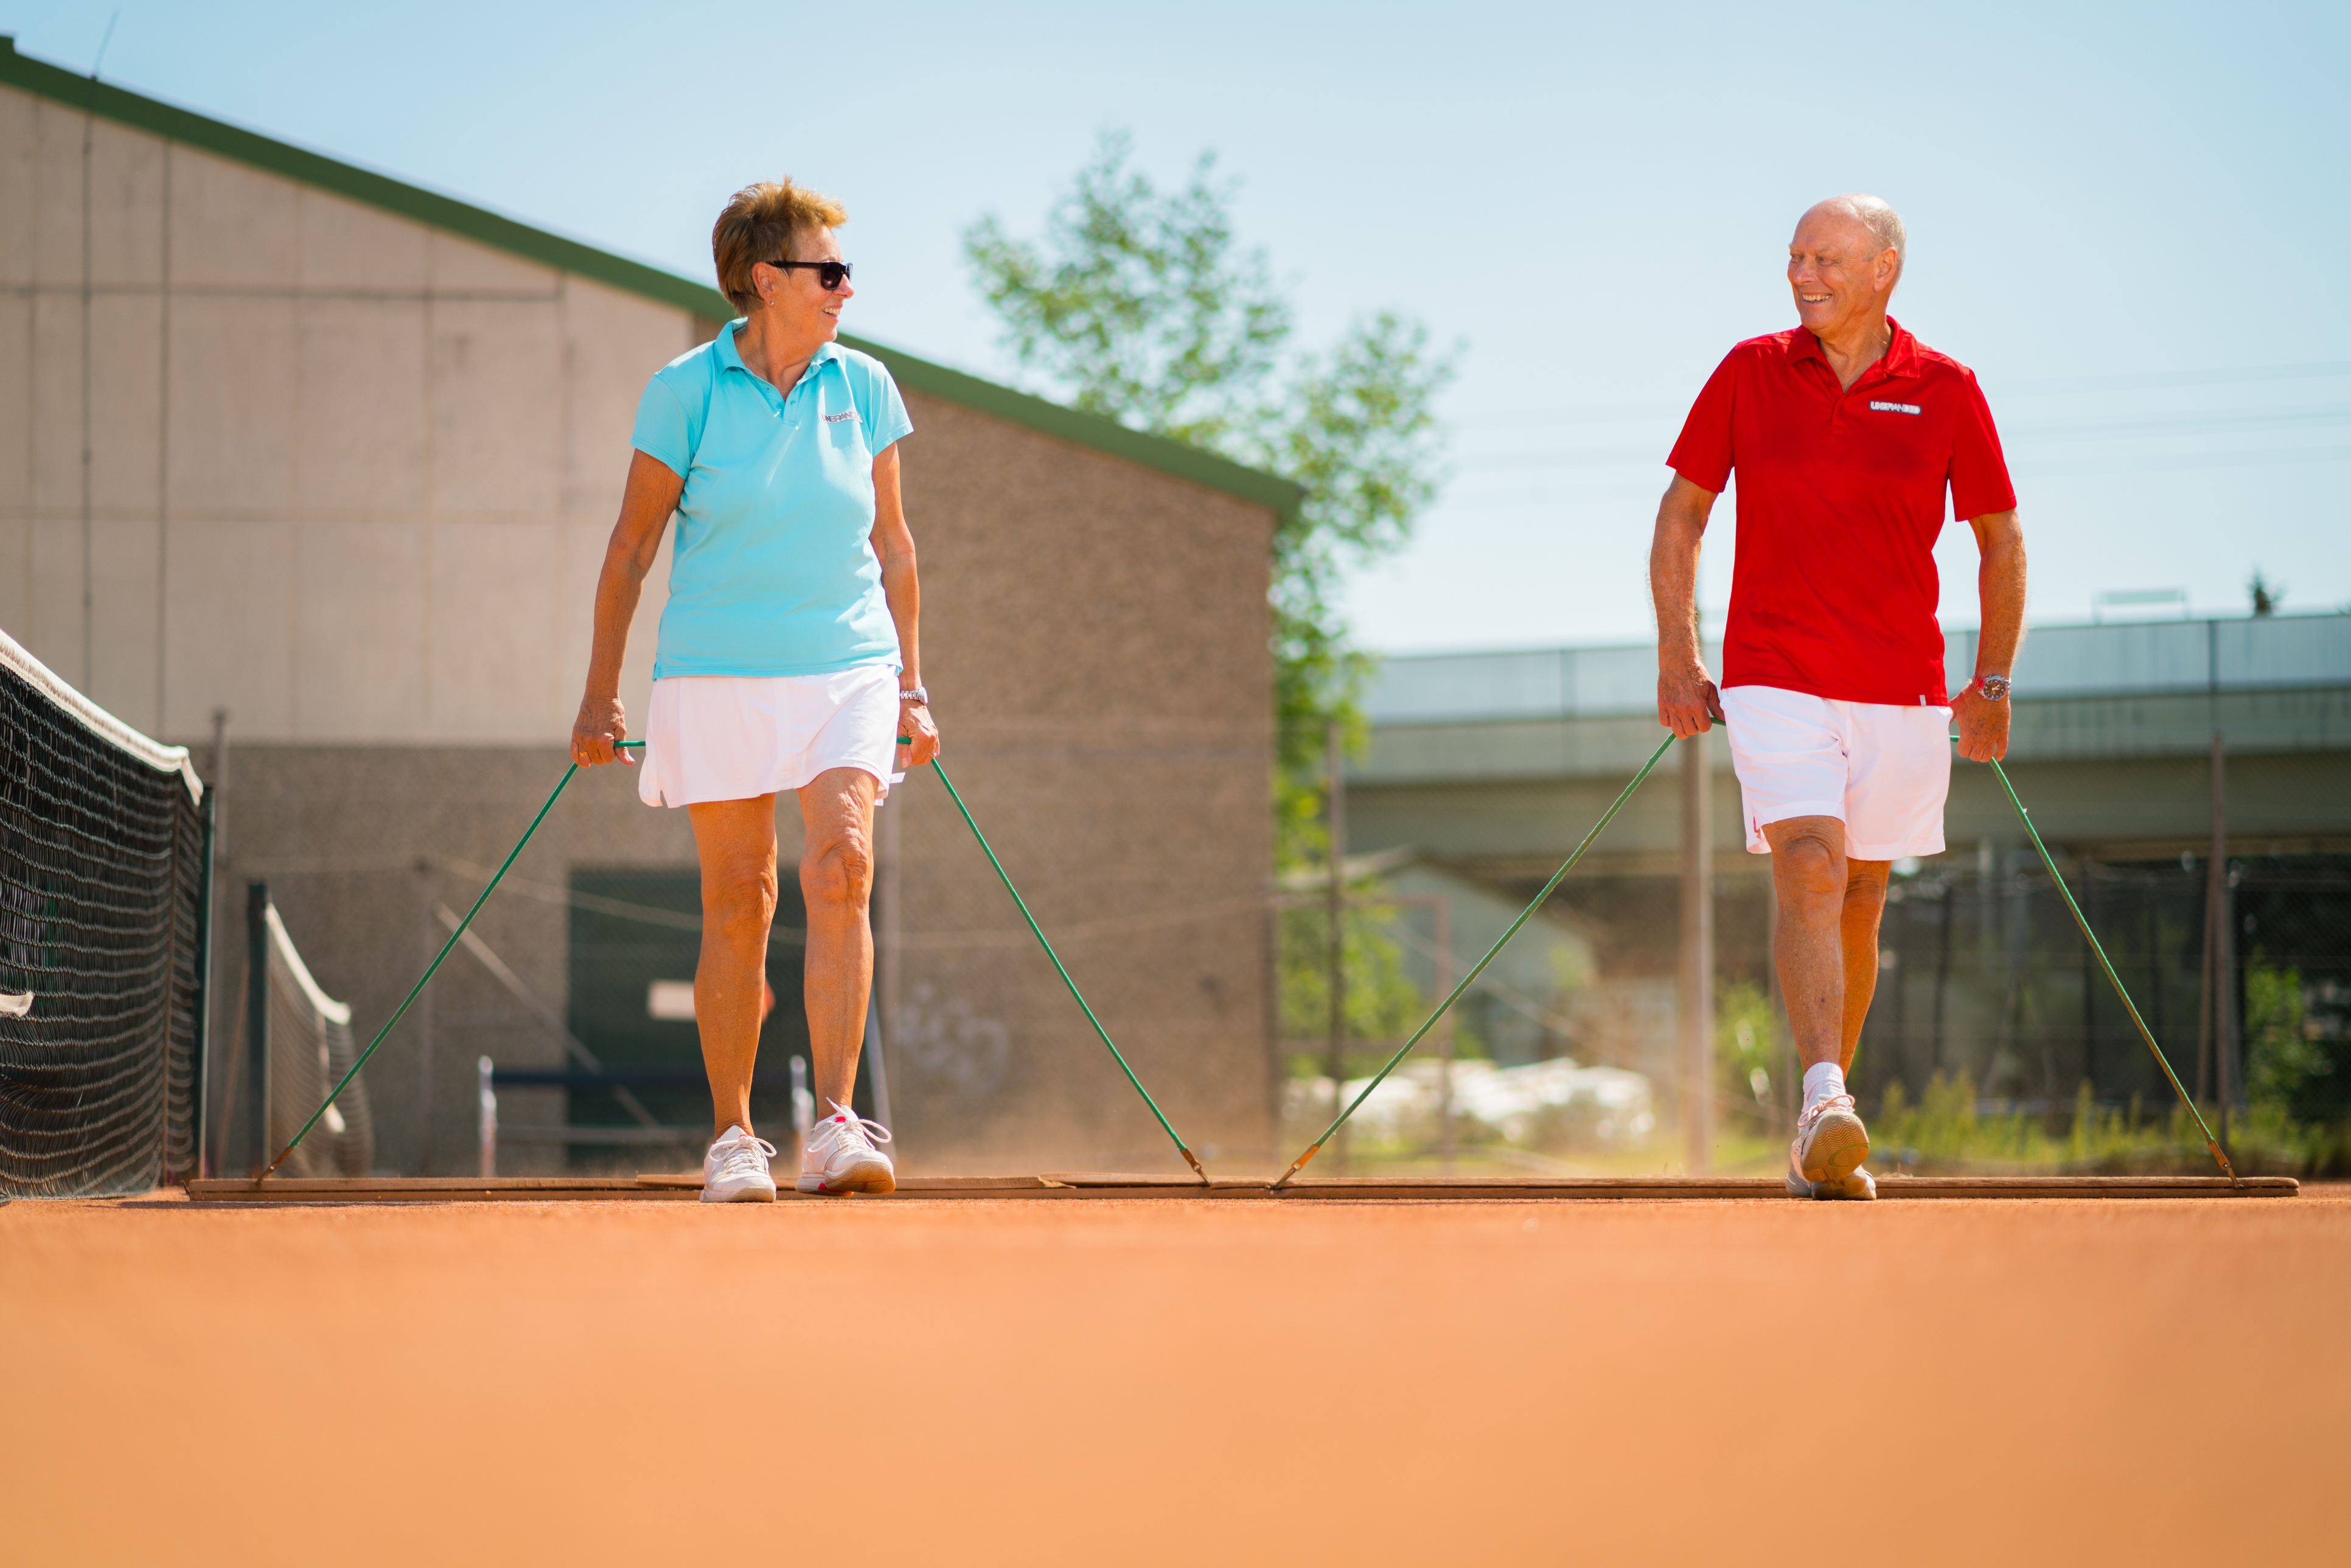 A retired couple prepares to play tennis